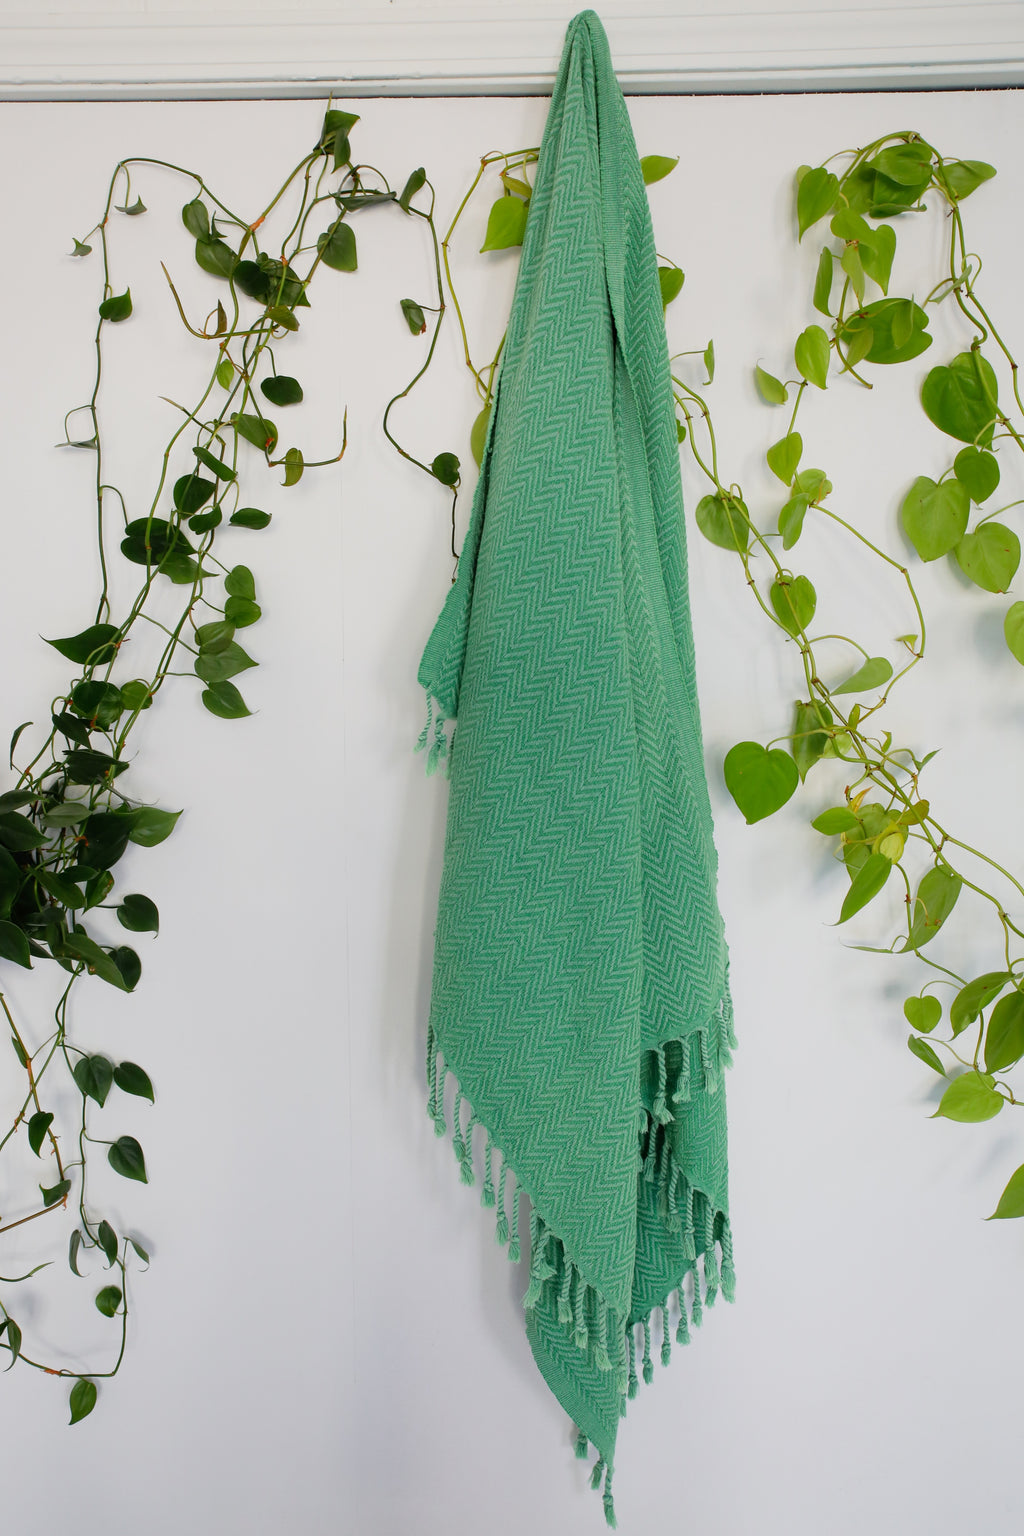 Handwoven Sabah Pestemal Towel in grass